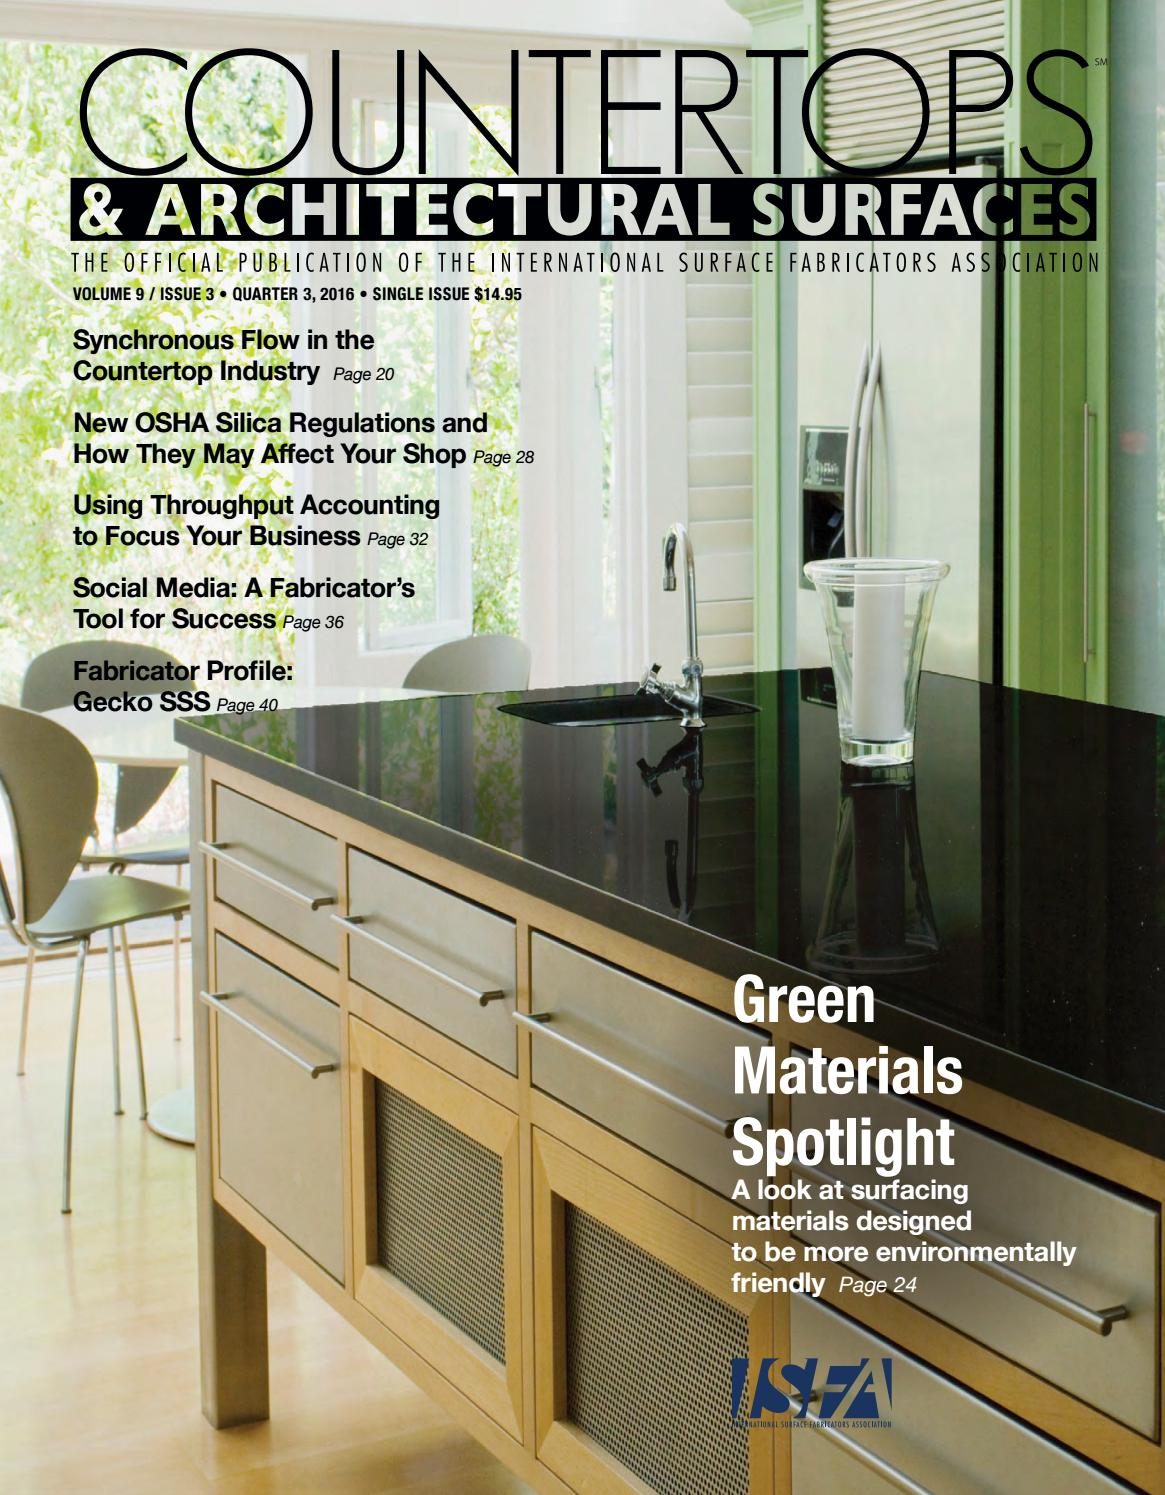 ISFA's Countertops & Architectural Surfaces Vol  9, Issue 3